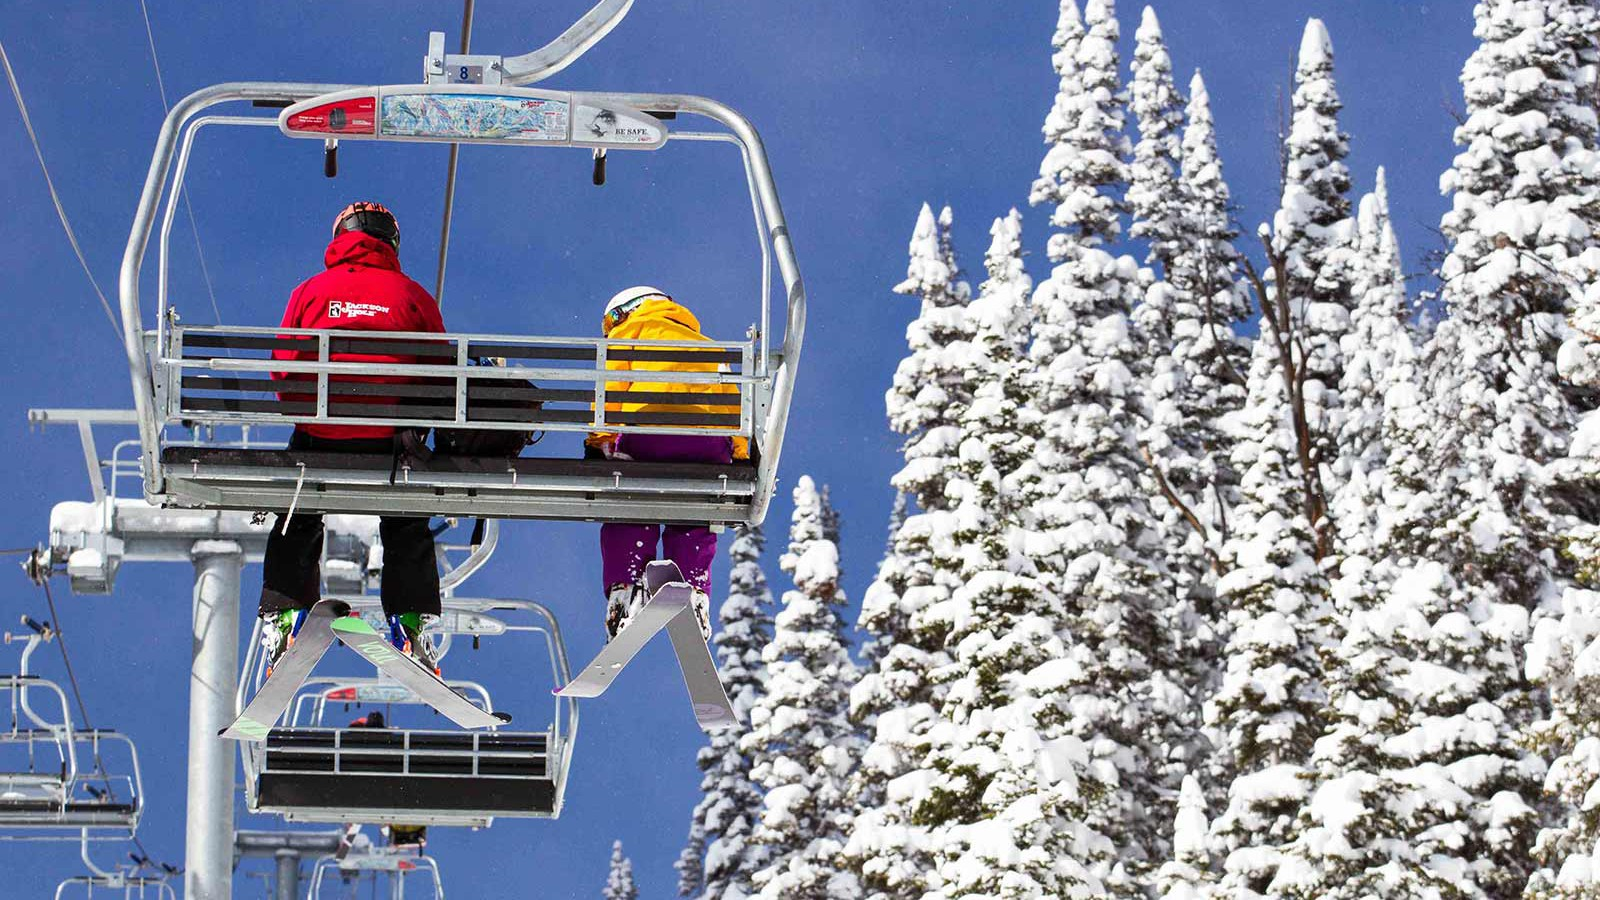 Jackson Hole Ski Resort, USA - lifts